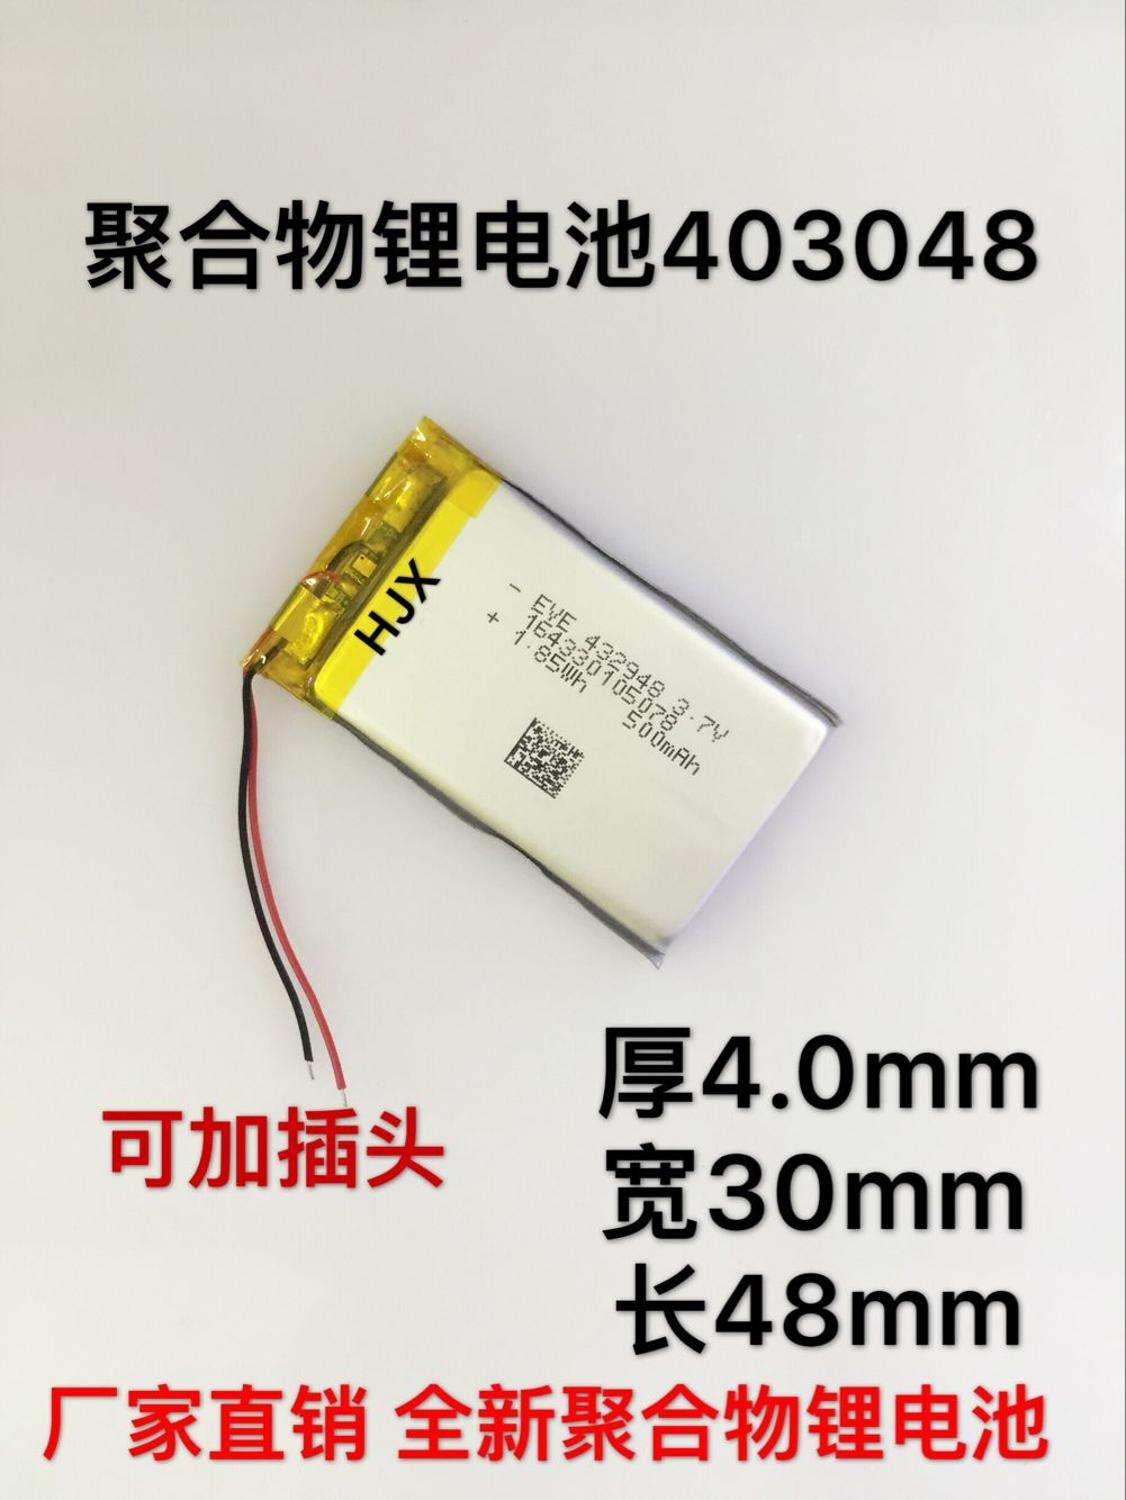 Polymer lithium battery, 403048 plug-in speaker, POS machine, childrens early education machine, MP4 professional lithium batte